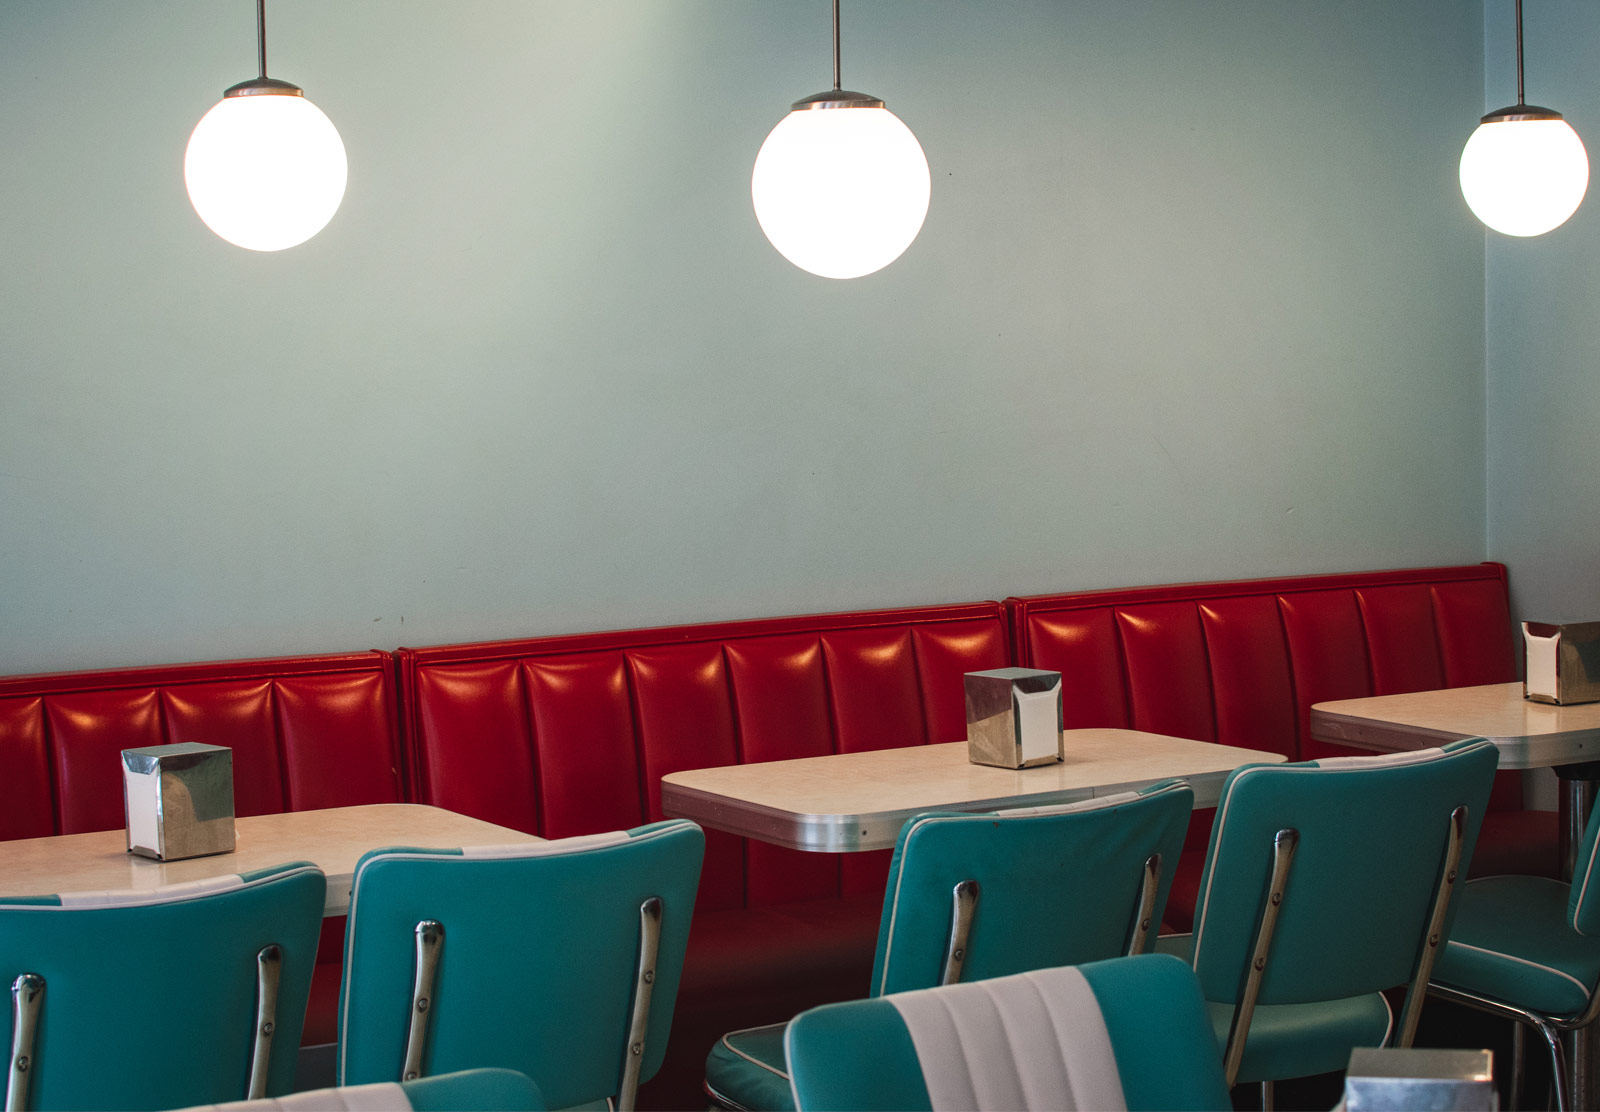 Blue and red diner decor